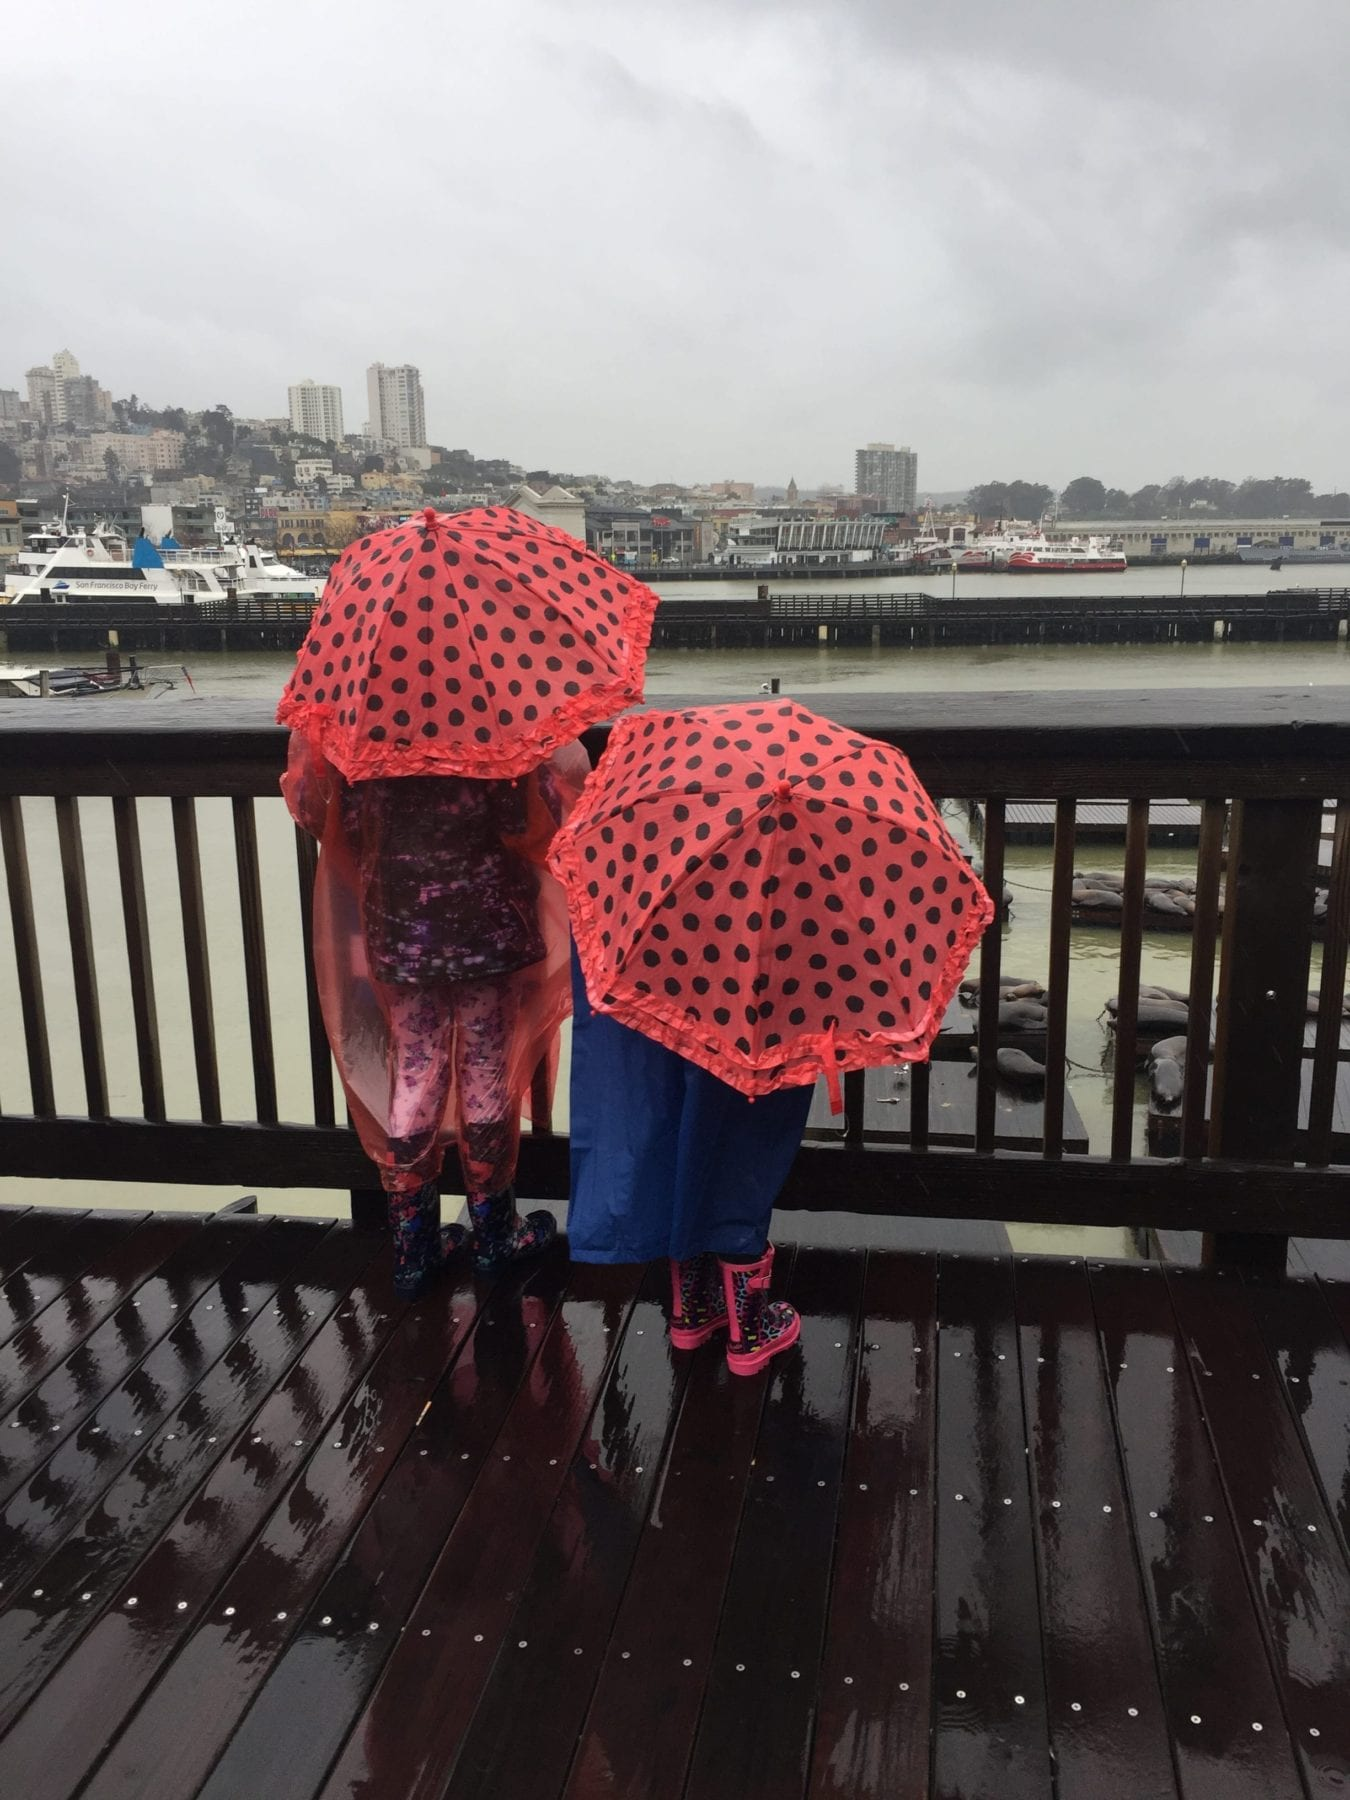 Fun things to do in San Francisco with kids